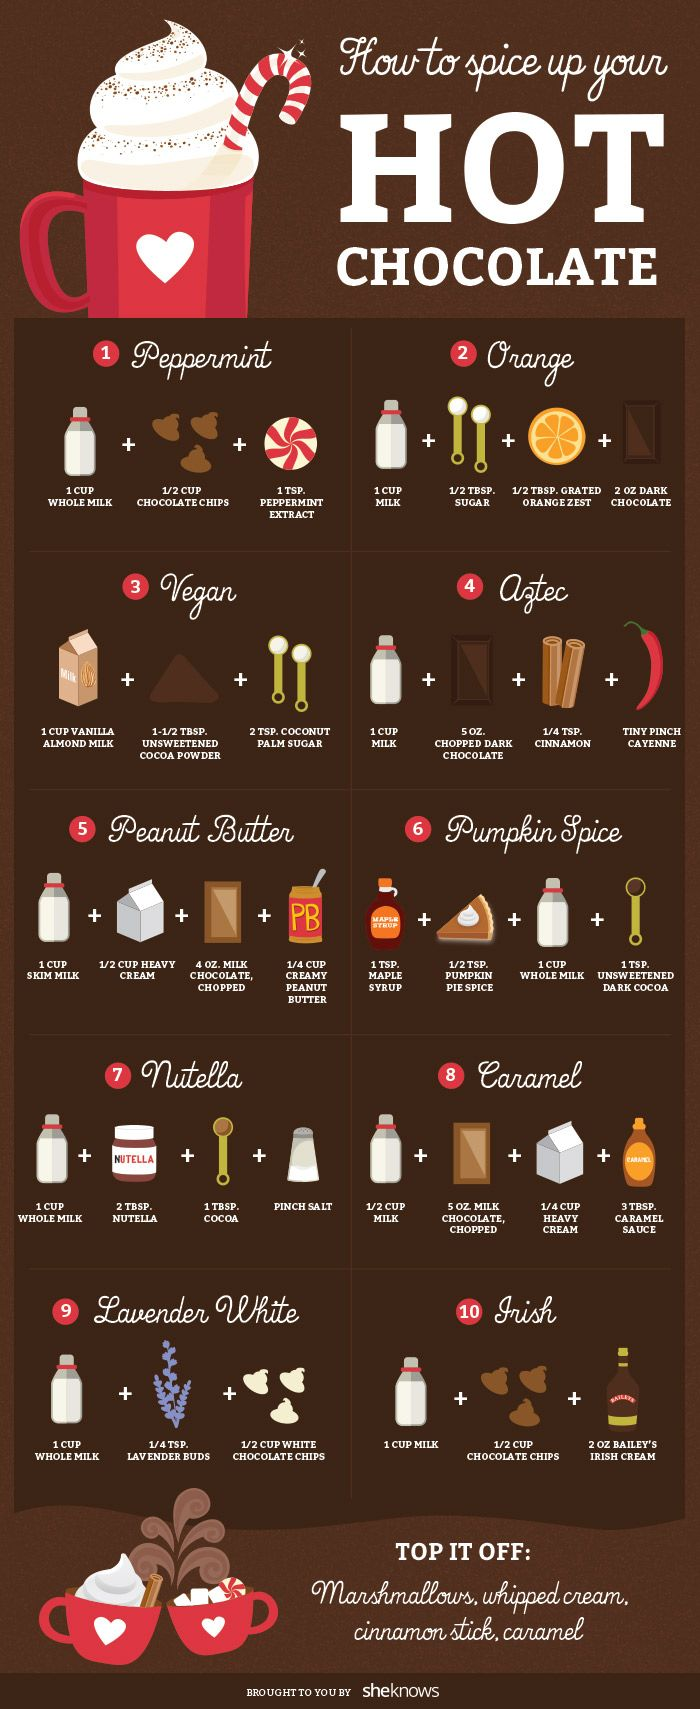 Upgrade your hot chocolate with these 18 amazing flavor combos ...